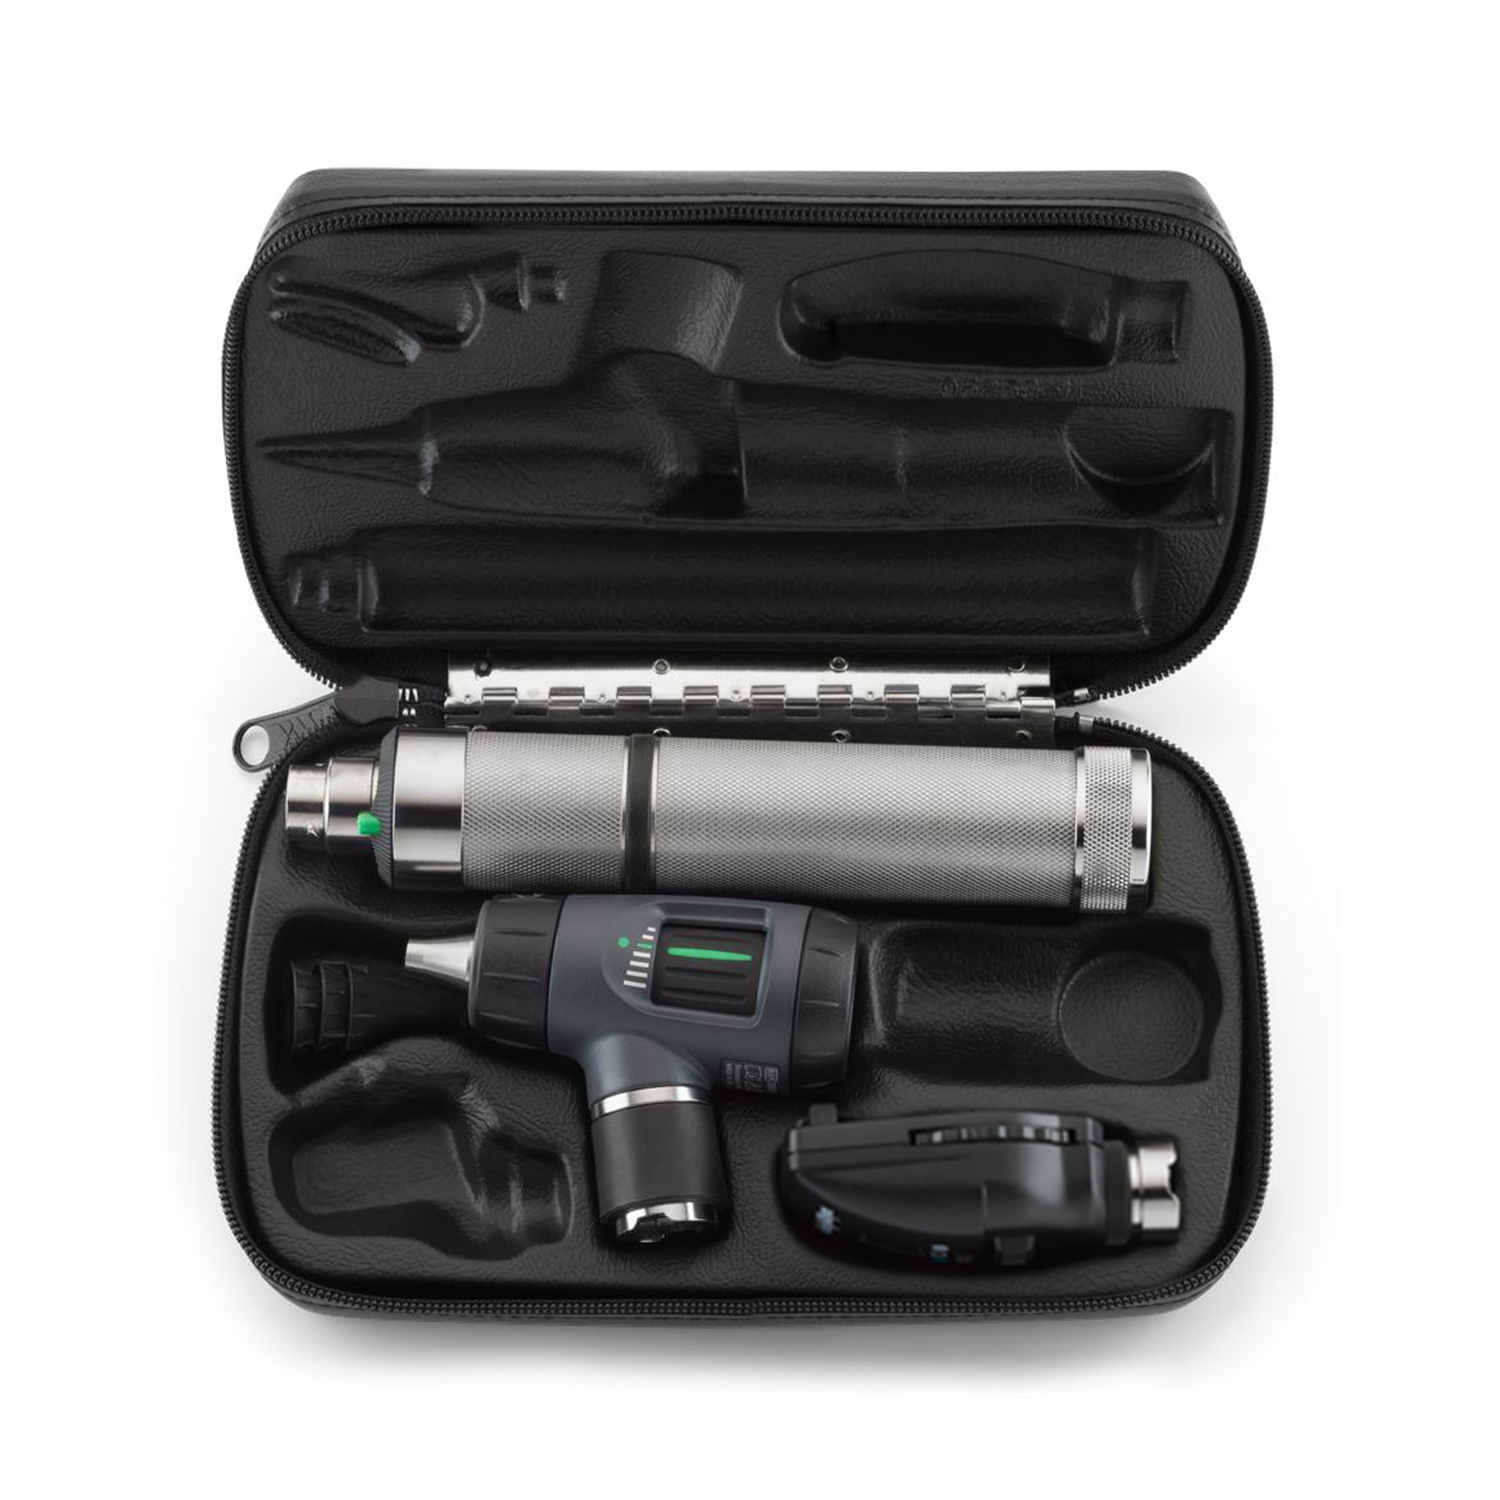 Coaxial Ophthal, MacroView Otoscope, Rechargeable Nickel-Cadmium Handle, Hard Case